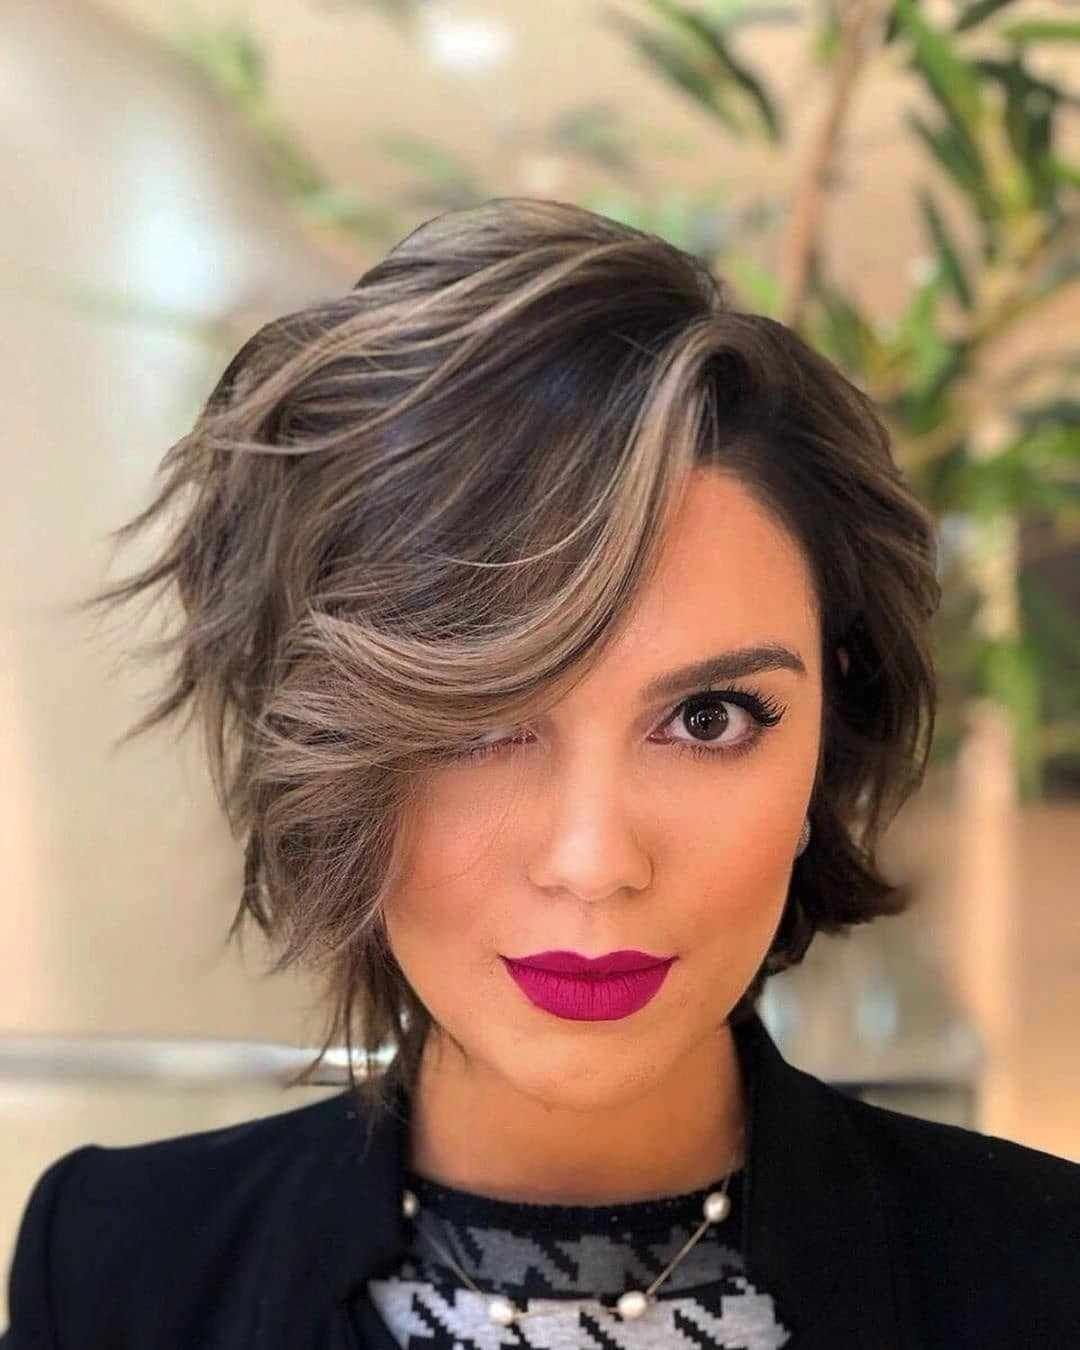 30+ Latest Modern Short Hairstyles 2019 - Pixie & Bob Short Haircuts #Shorthairbob #shortstyles